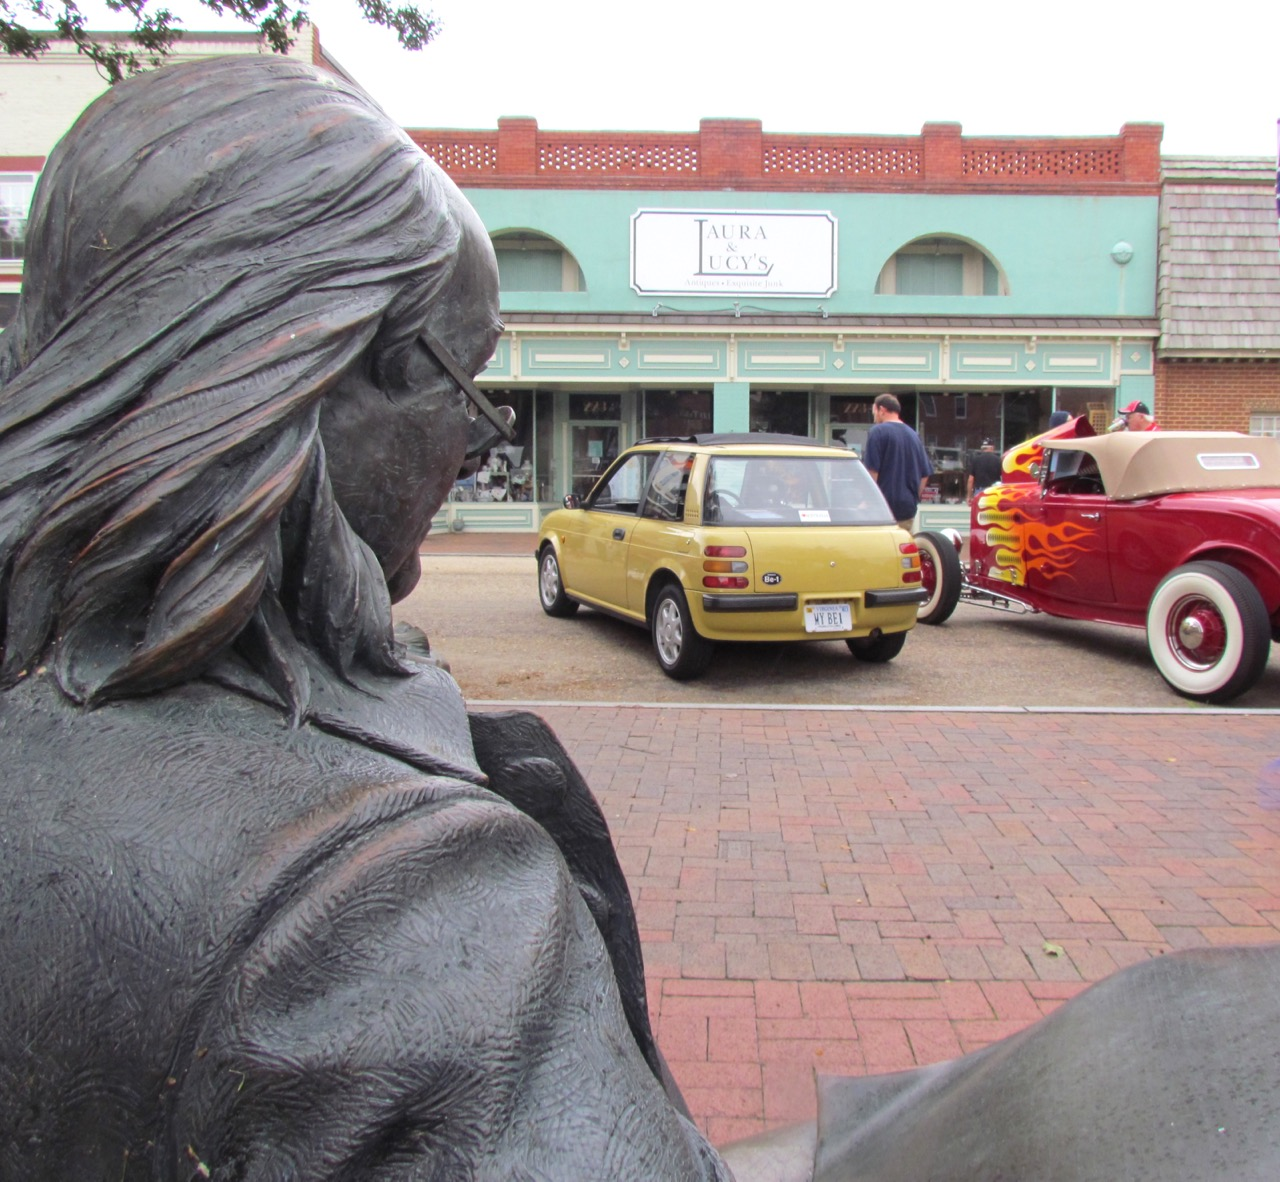 Ben Franklin's not sure what to think about car show on usually quiet main street of Smithfield, Virginia| Larry Edsall photos